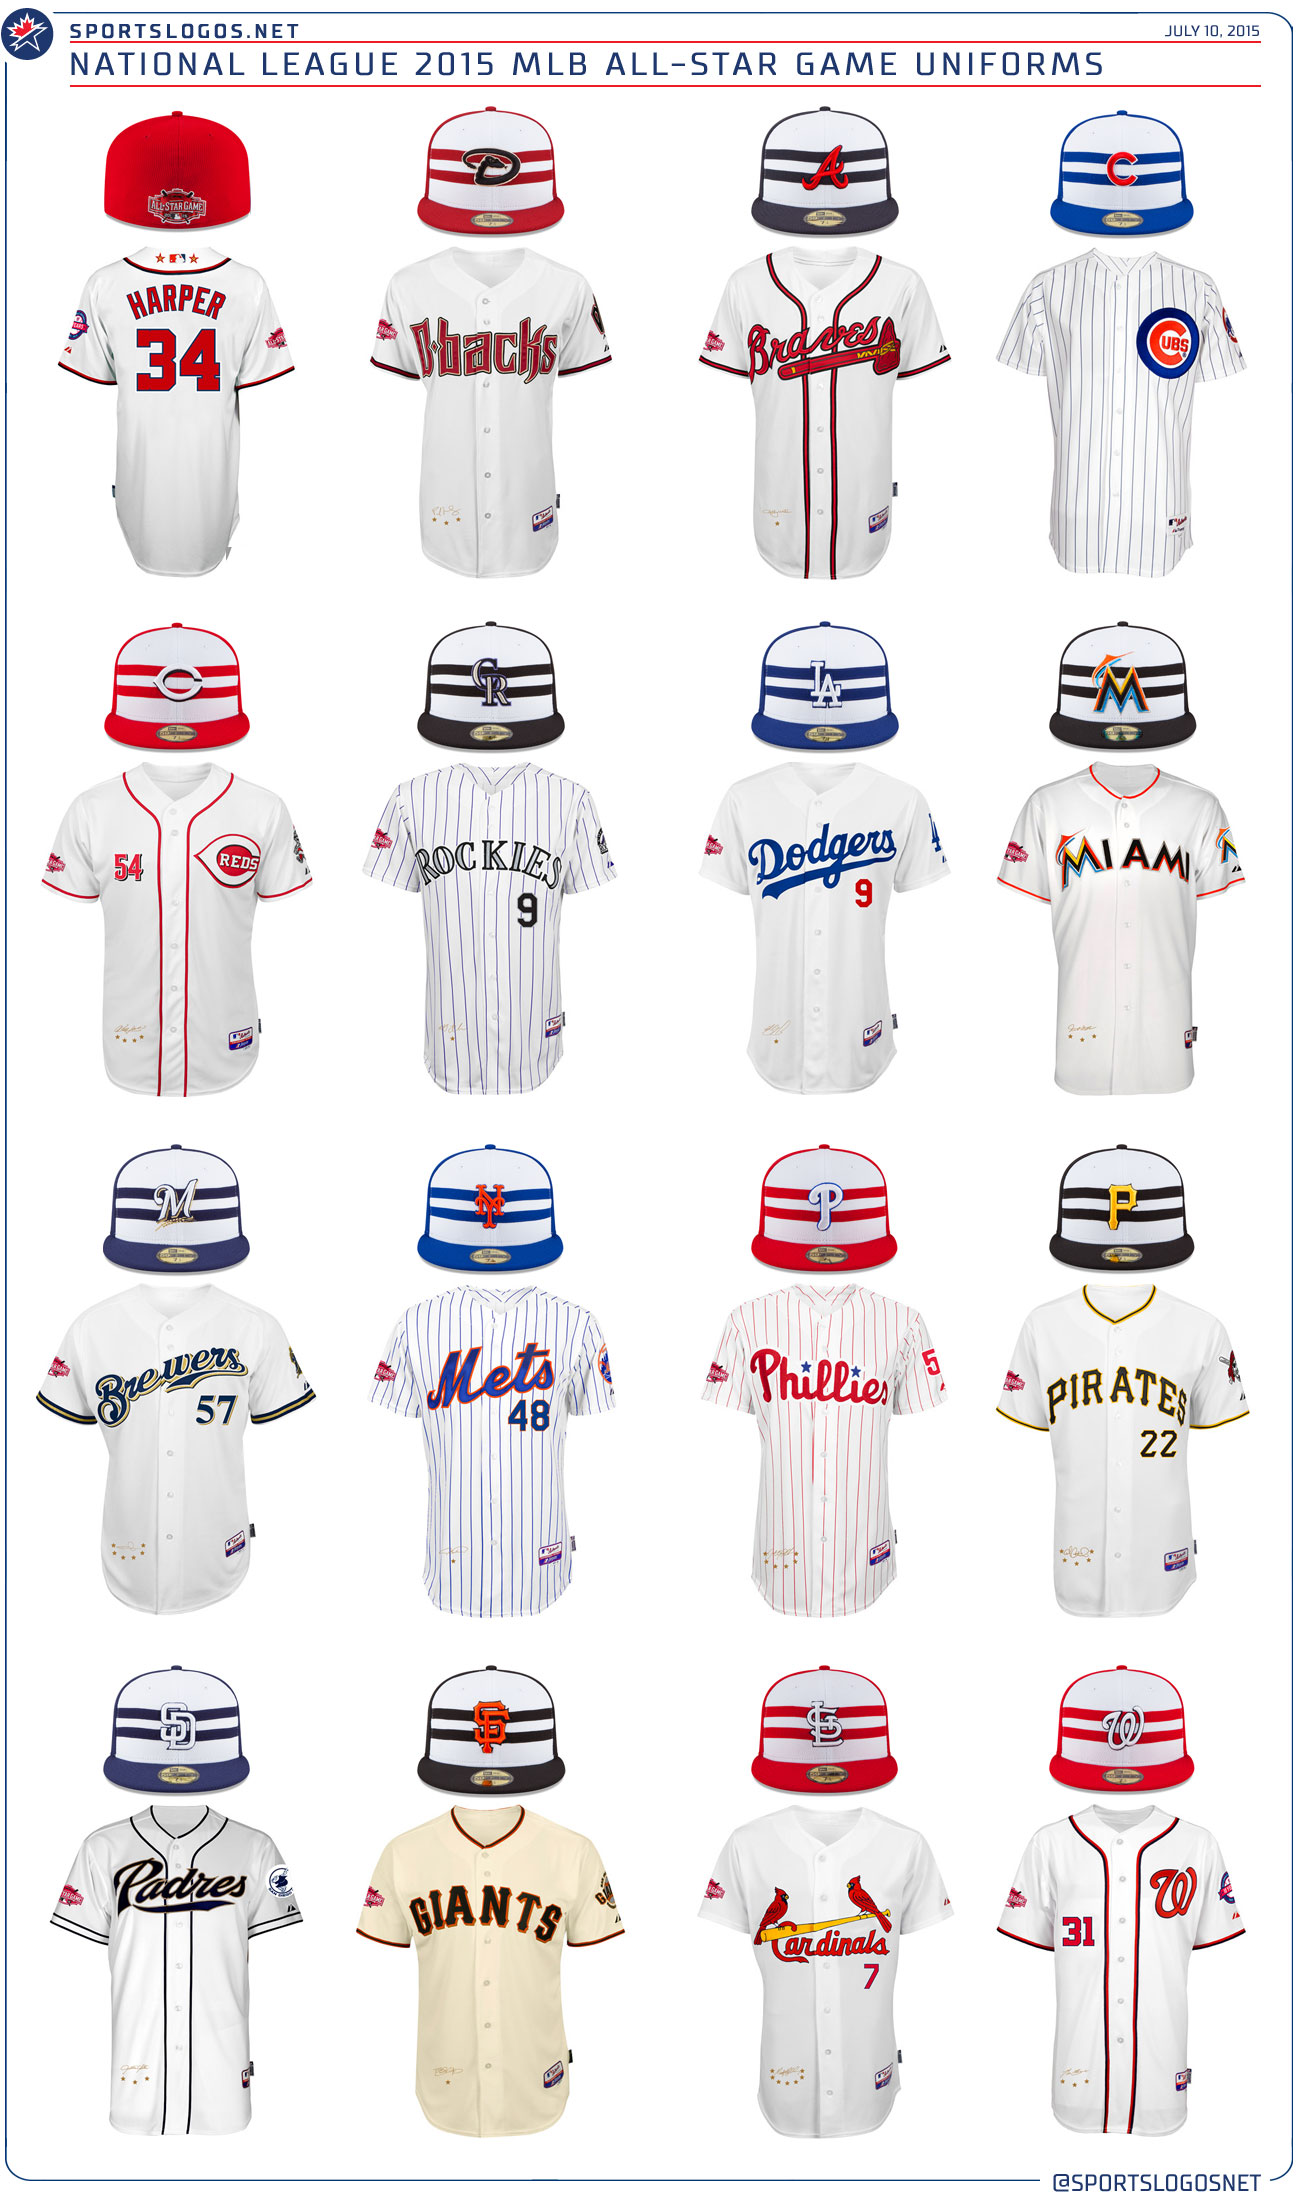 2015 National League All-Star Game Uniforms